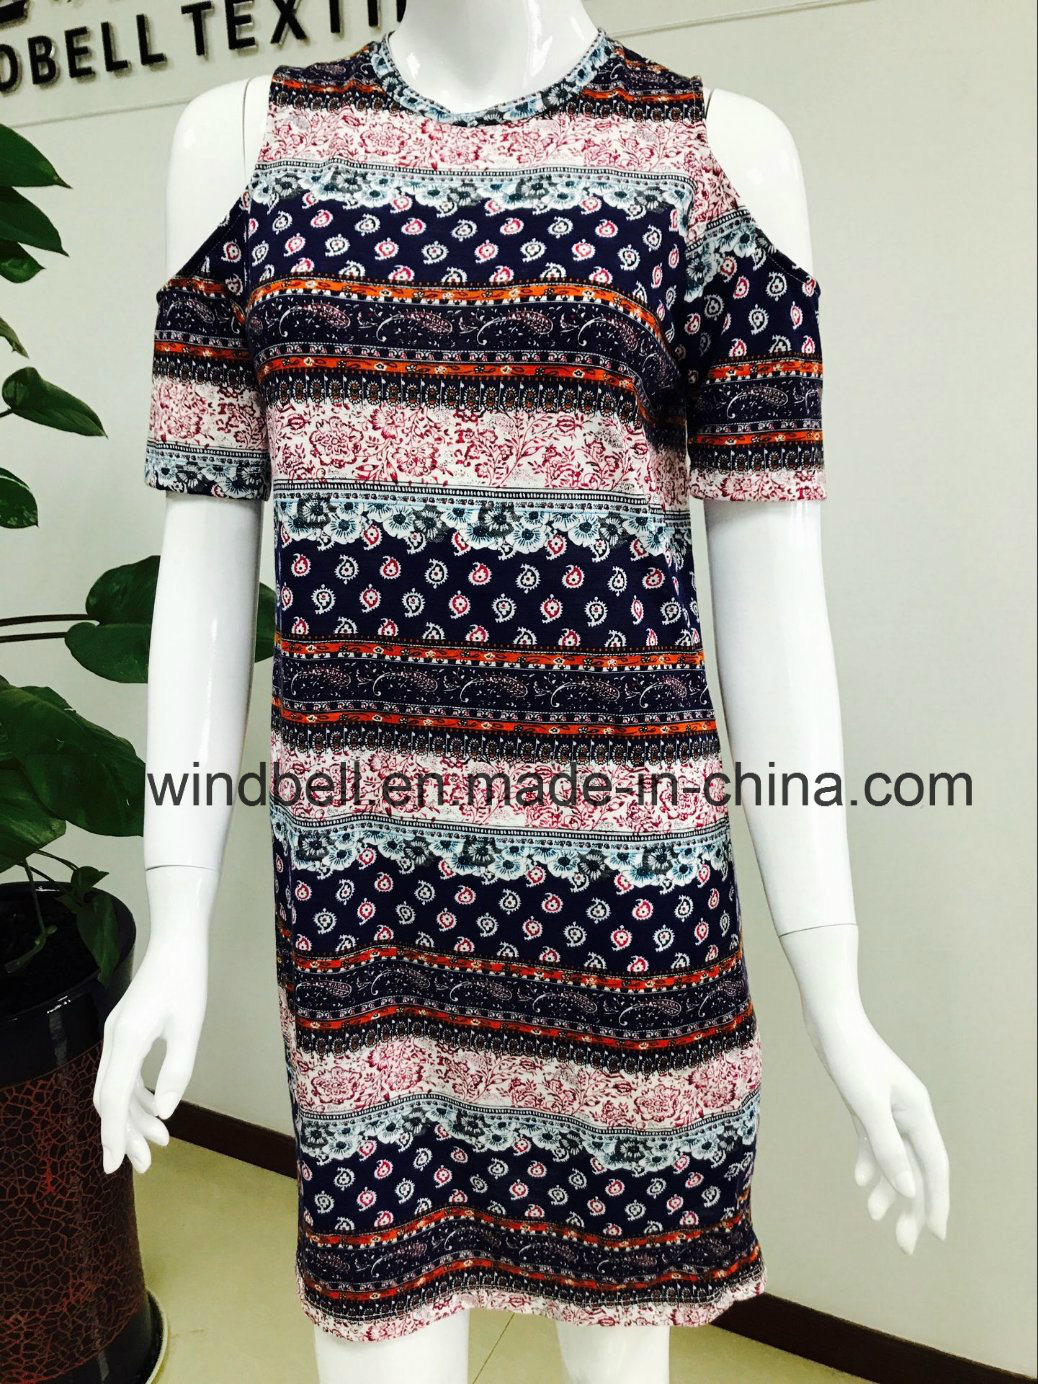 Womens Artistic Dress with All-Over Printing